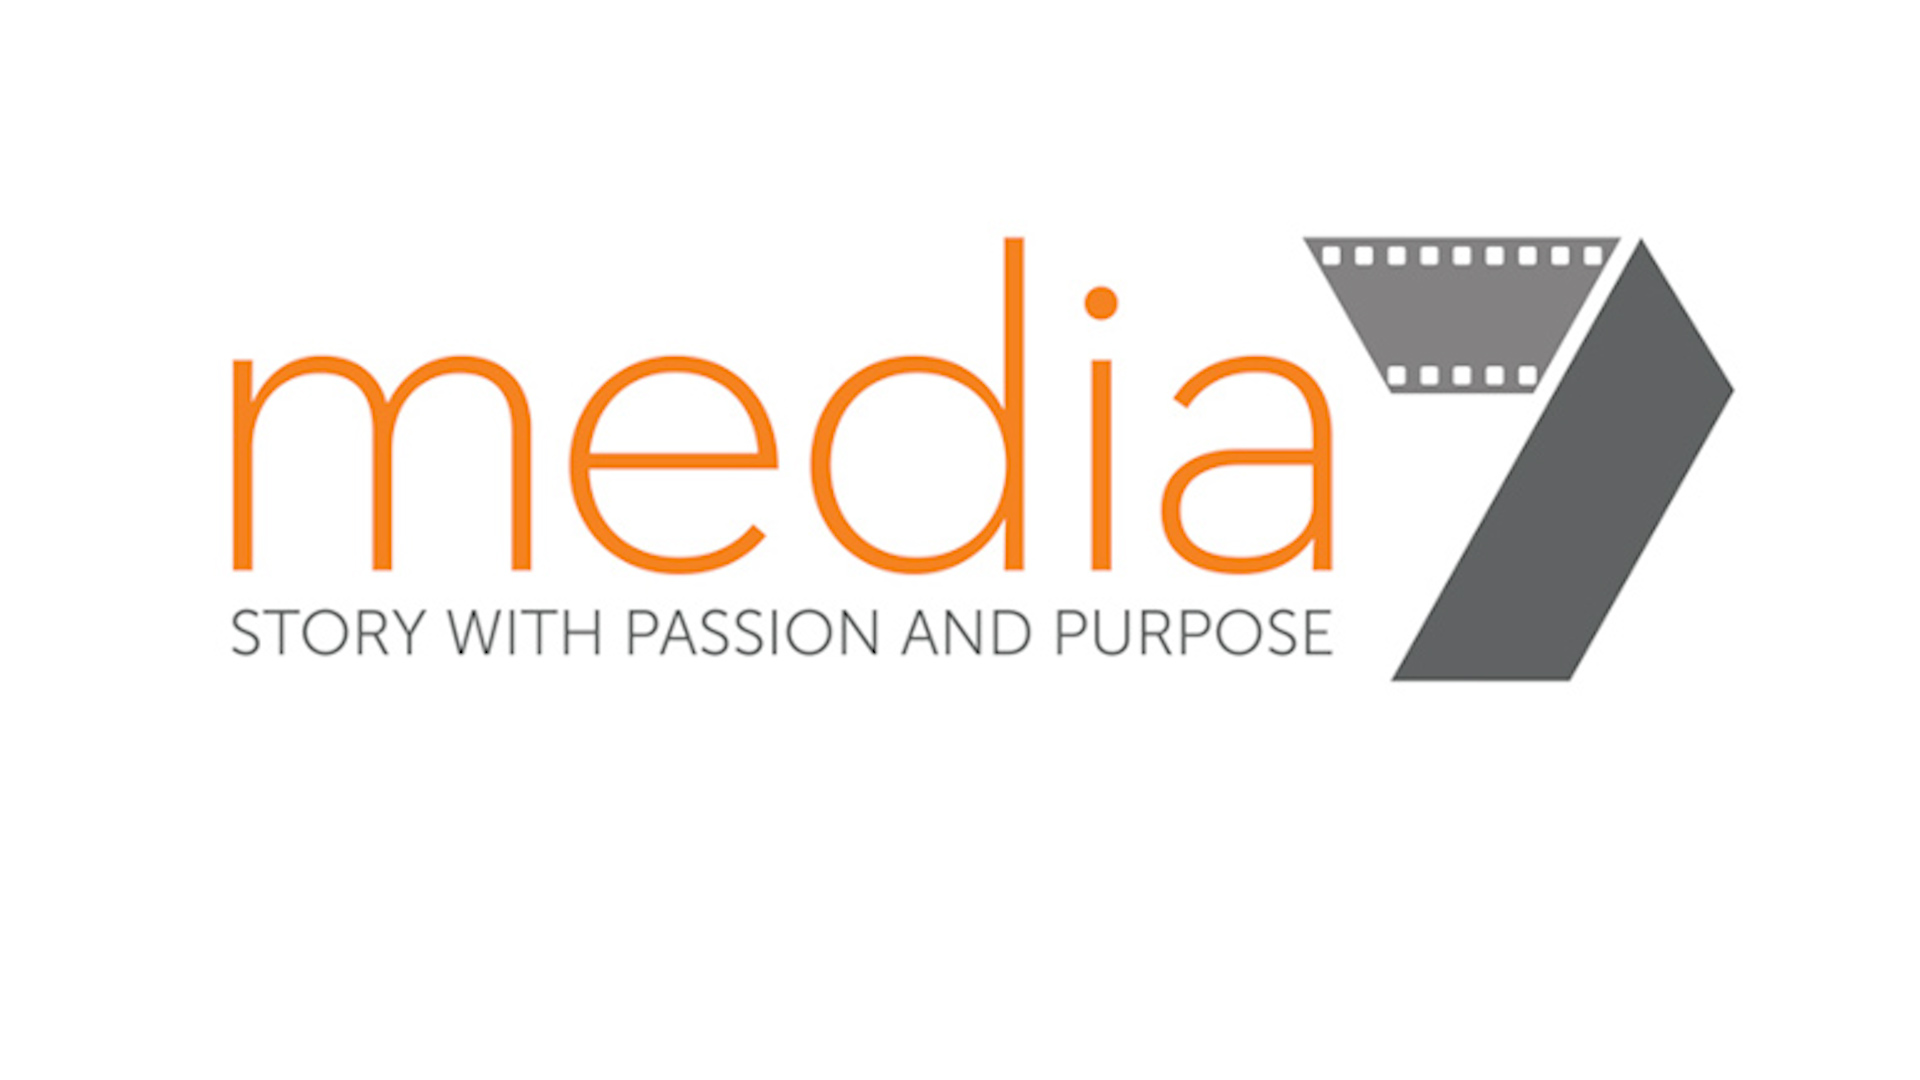 media7 logo clean large.jpg